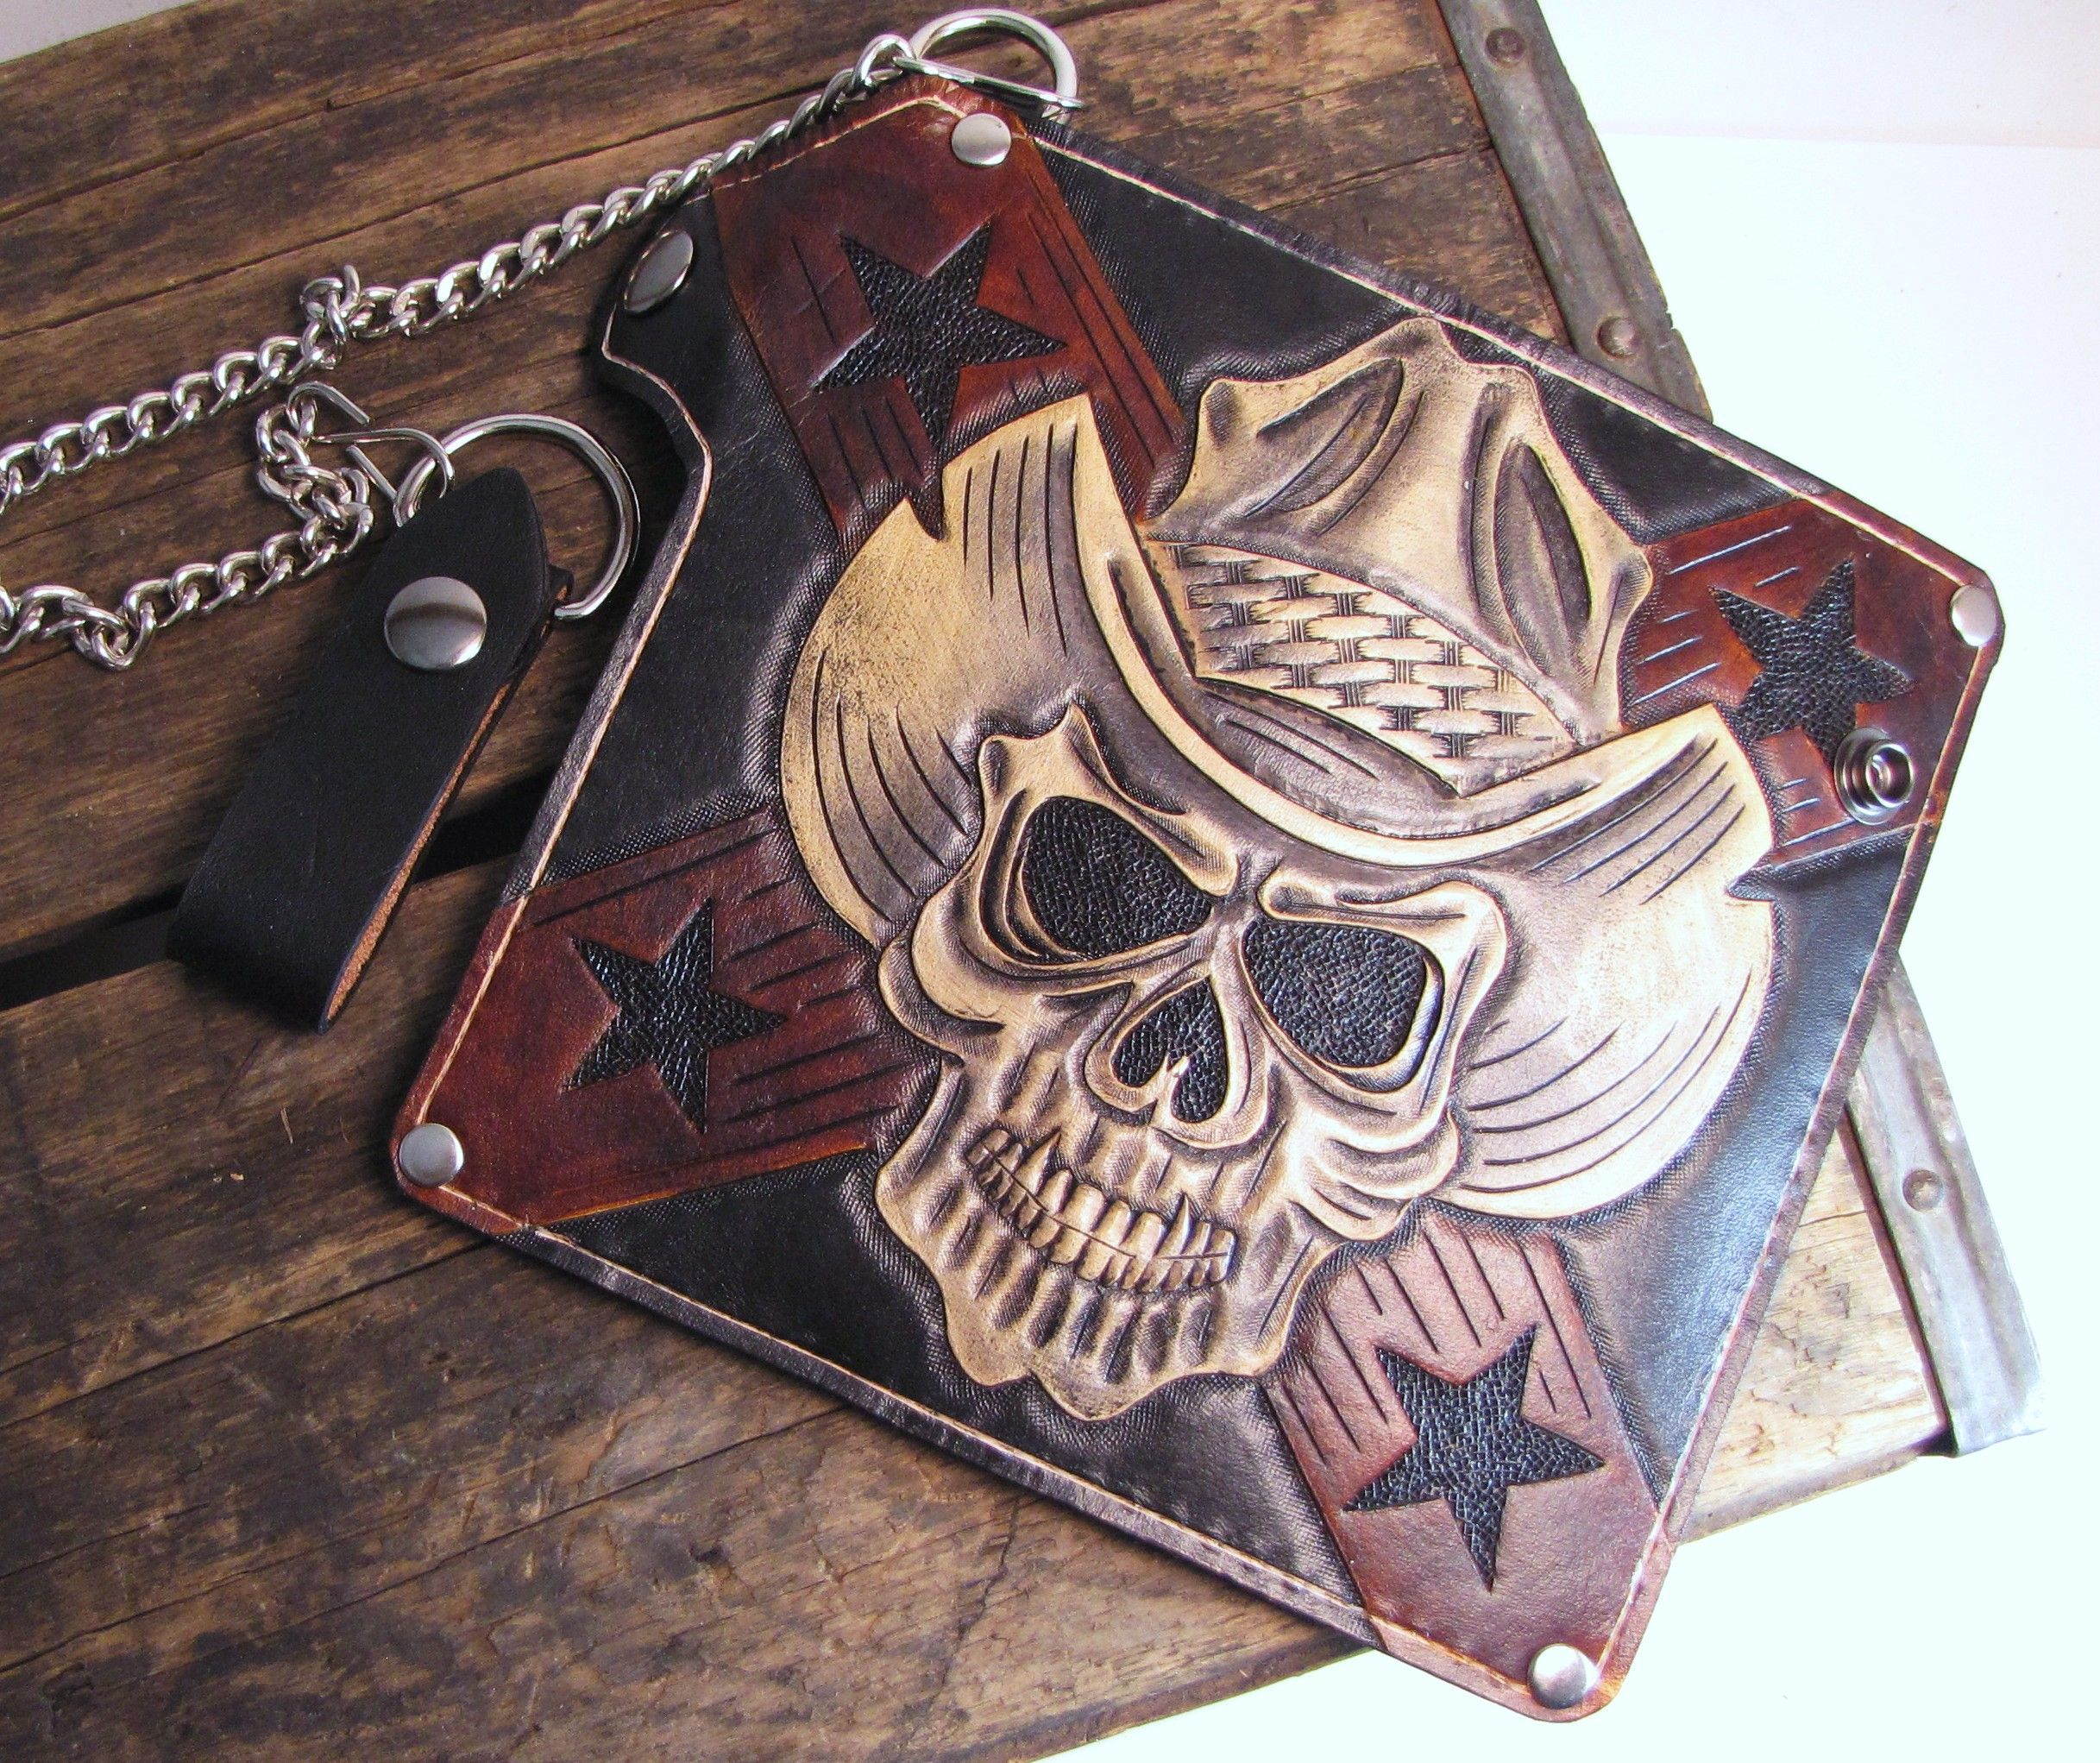 Skull leather tooling patterns google search … pinteres…